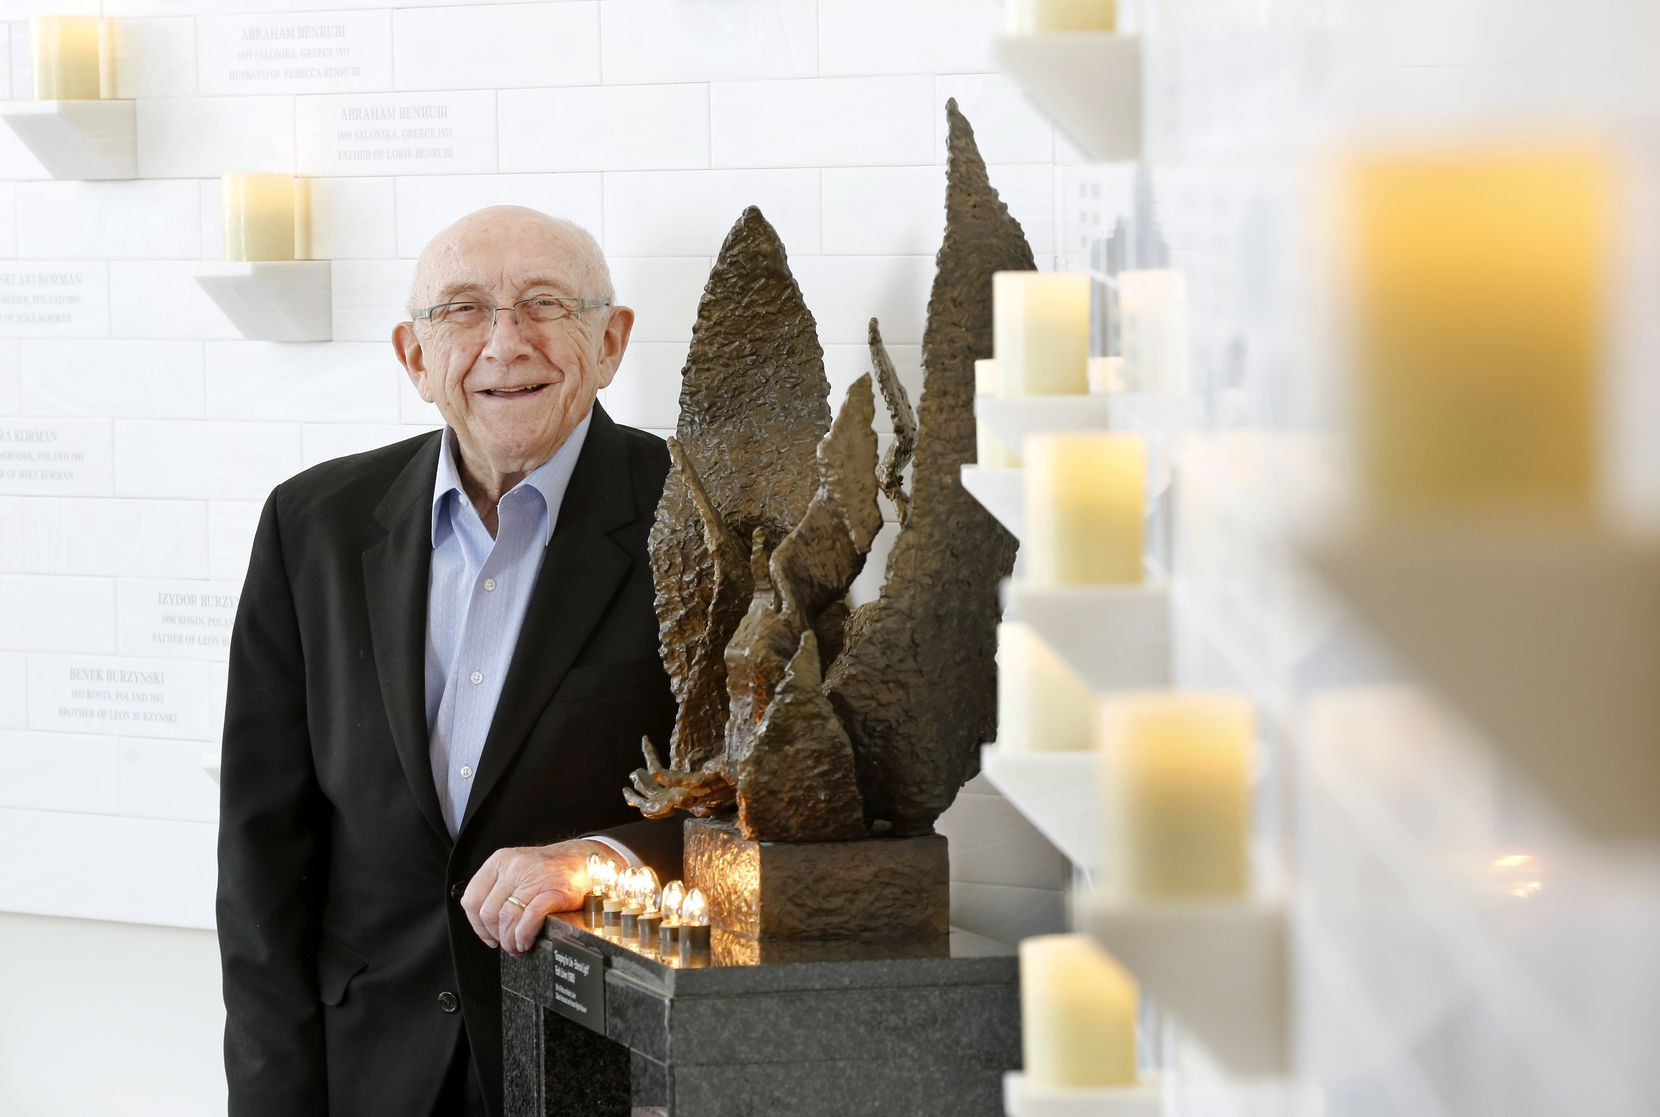 Holocaust survivor Max Glauben is photographed at the new Dallas Holocaust and Human Rights Museum in downtown Dallas, Friday, December 6, 2019. (Tom Fox/The Dallas Morning News)